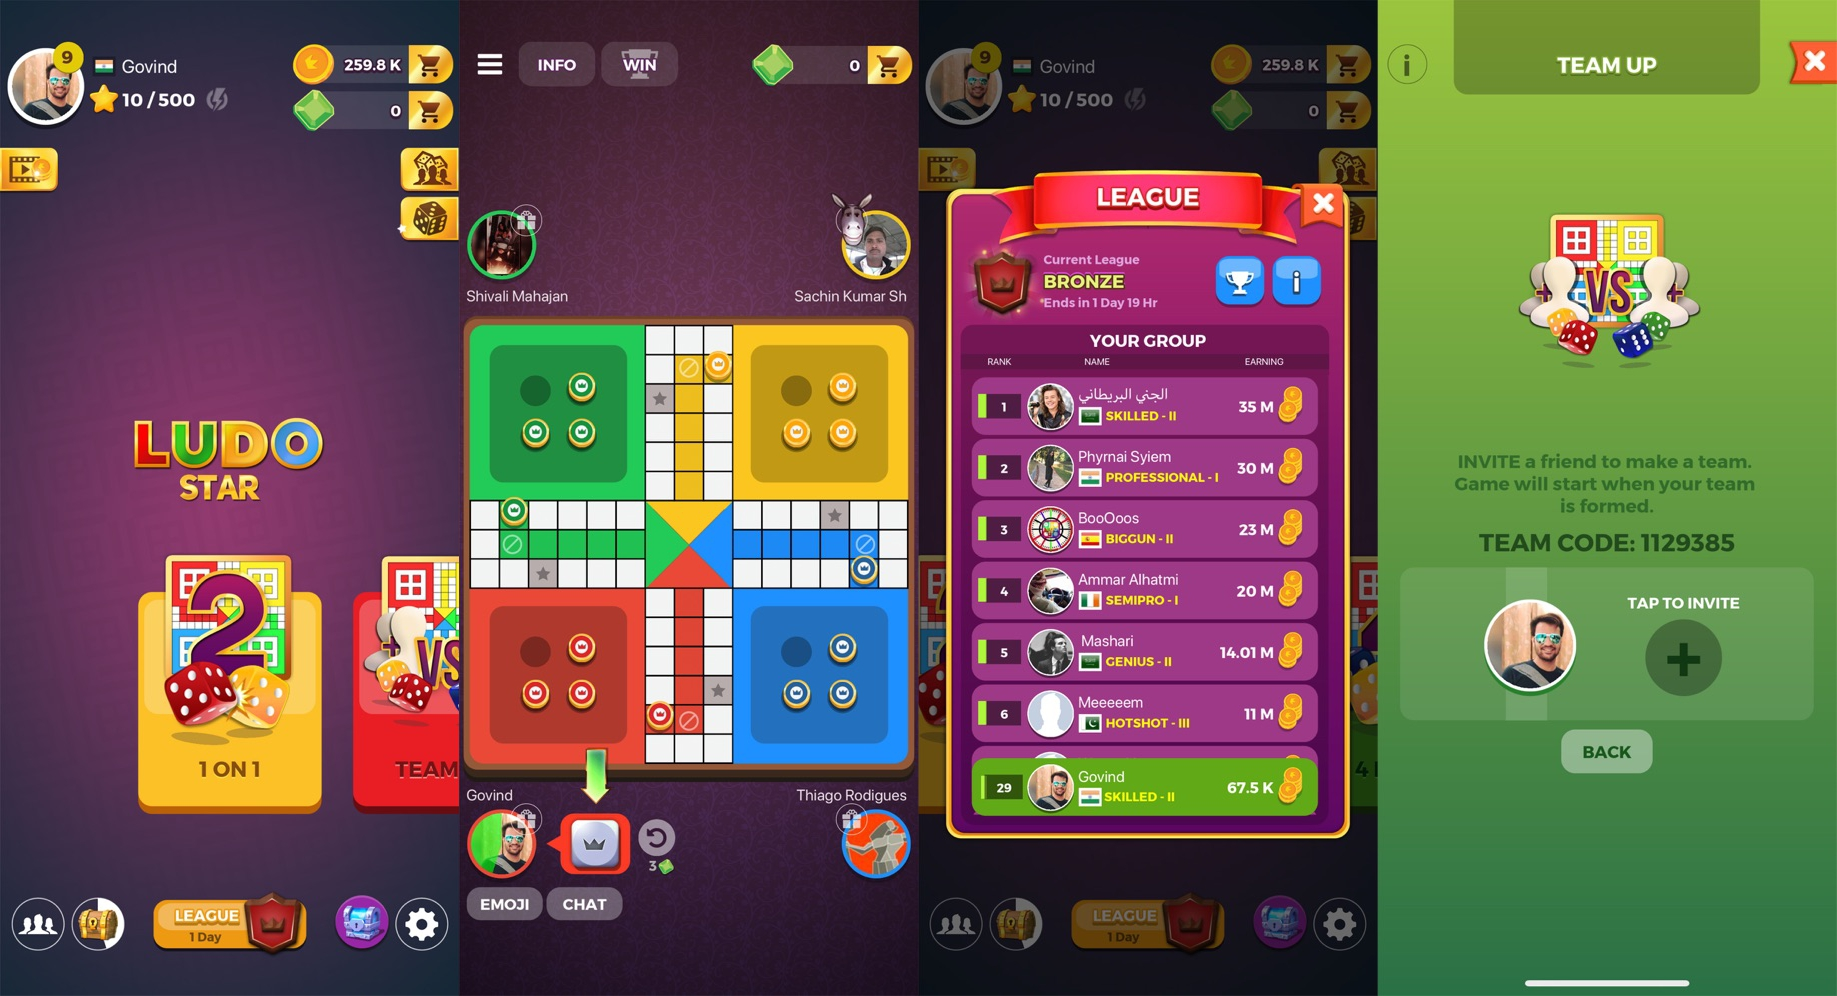 Ludo Star 2 0 Latest Game APK Free Download For Android